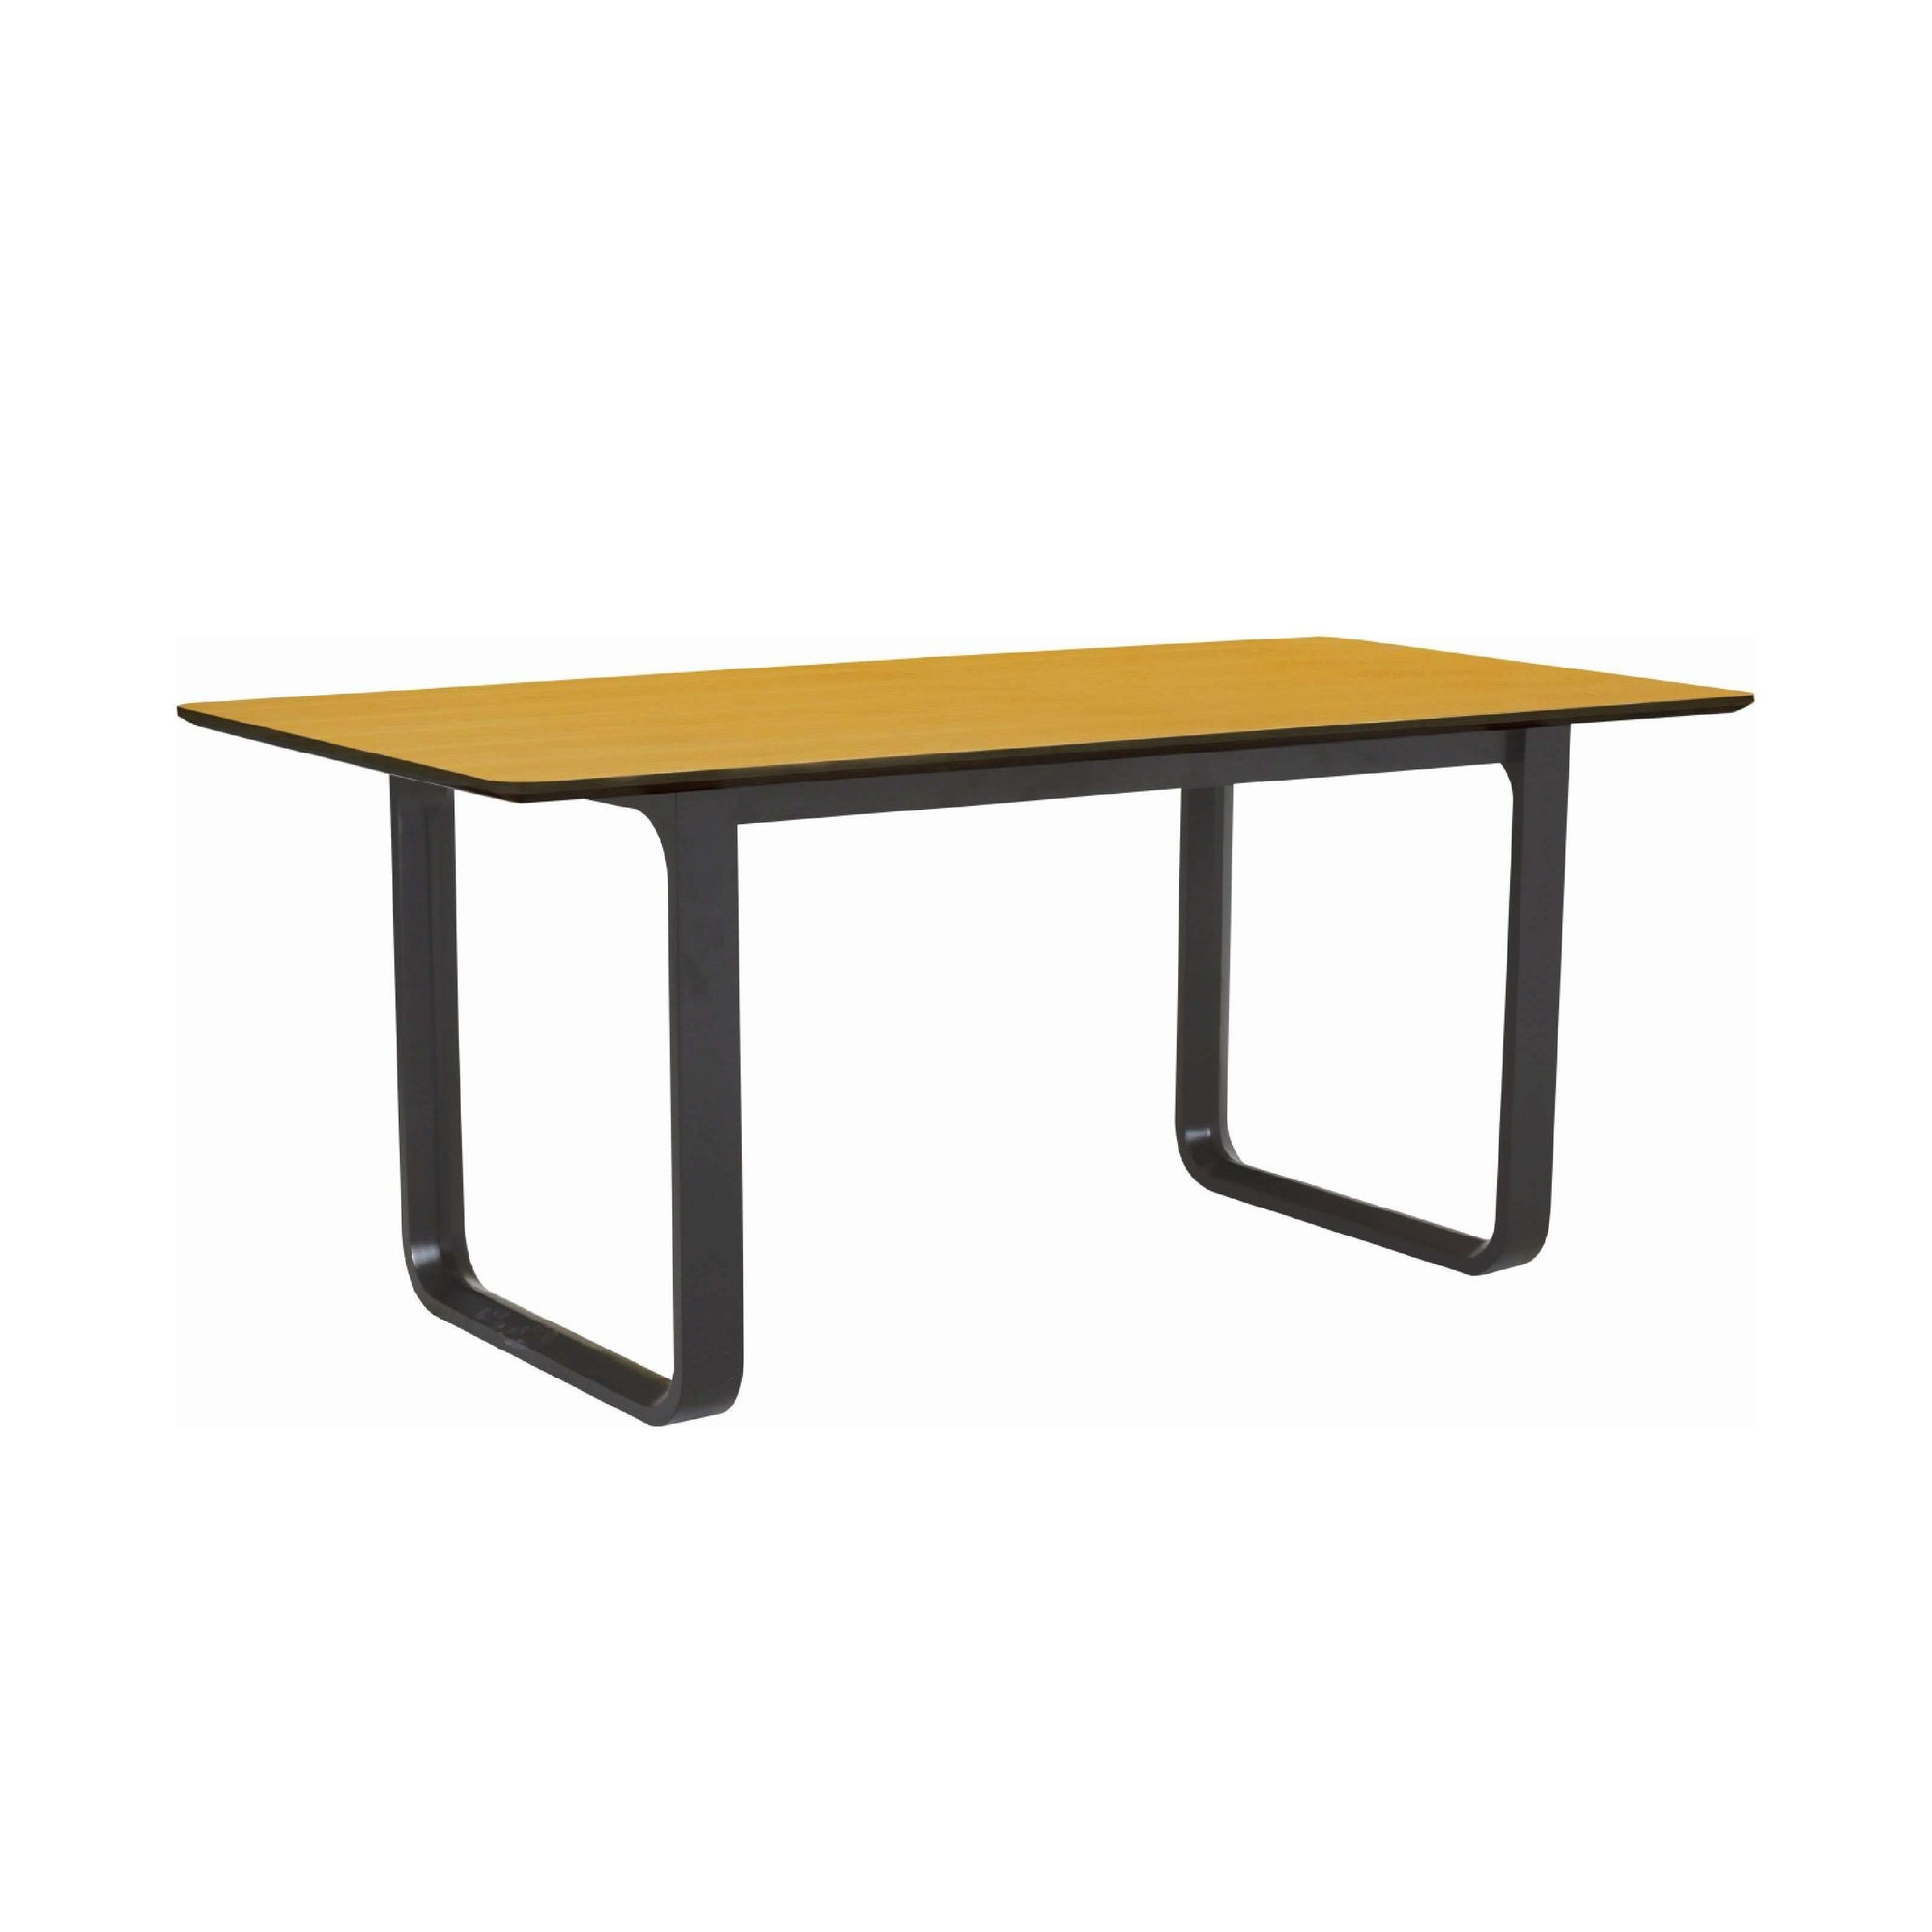 ULMER 1.8m Dining Table In Black Colour Leg, Oak Laminate Top